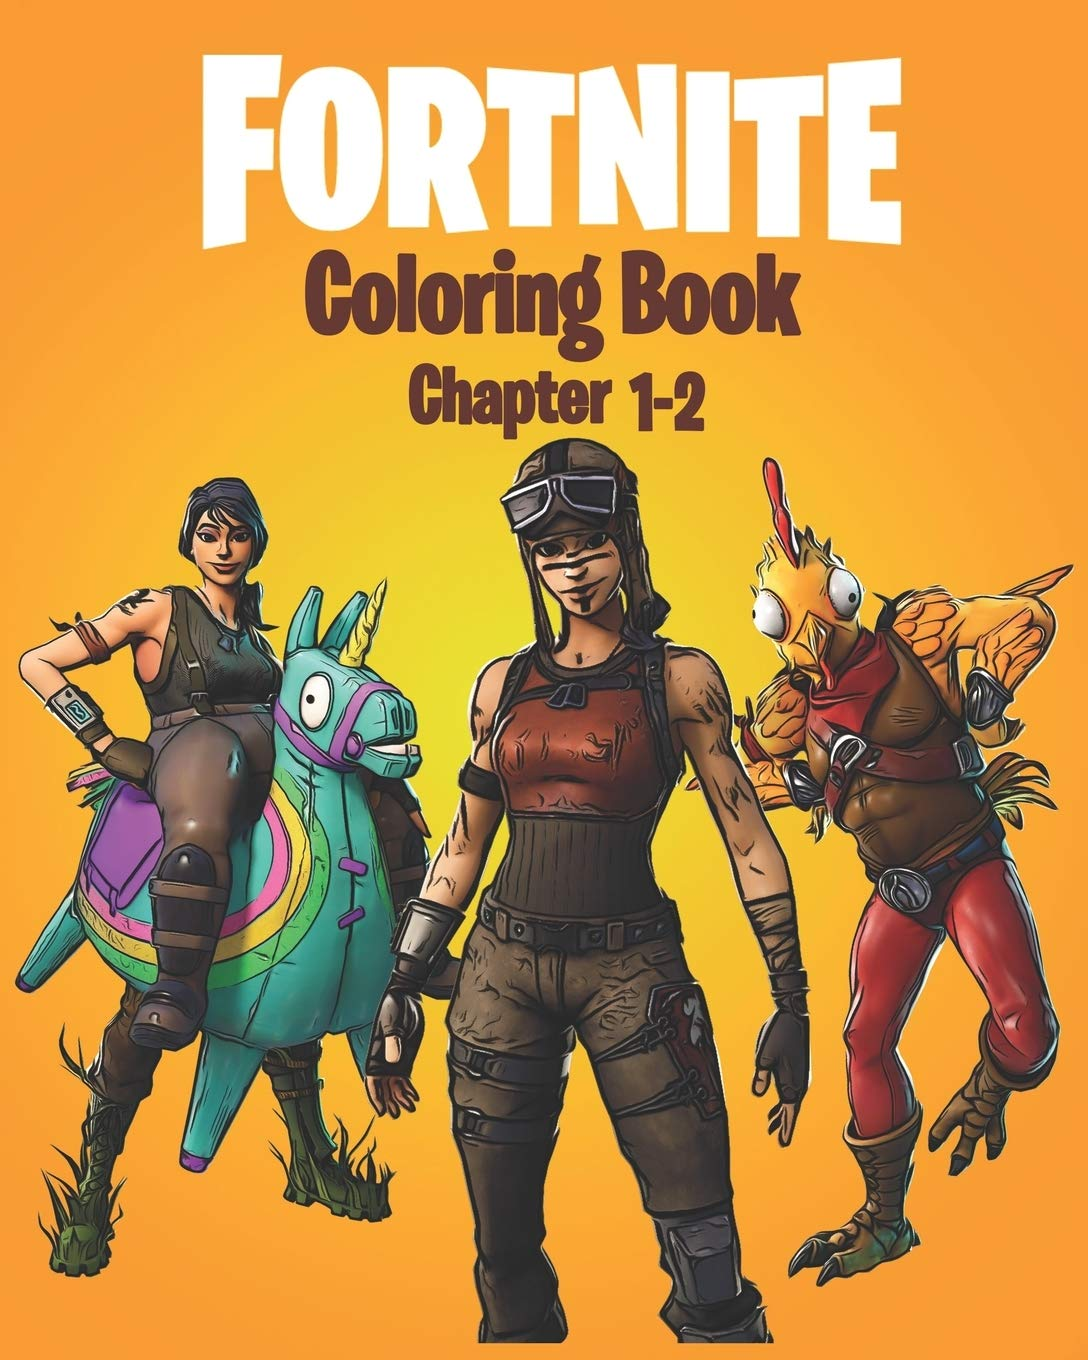 Fortnite Coloring Book Chapter 1 2 120 Coloring Pages For Kids And Adults Including Chapter 1 2 Skins Weapons And Game Items Mhq Coloring 9798622940606 Amazon Com Books